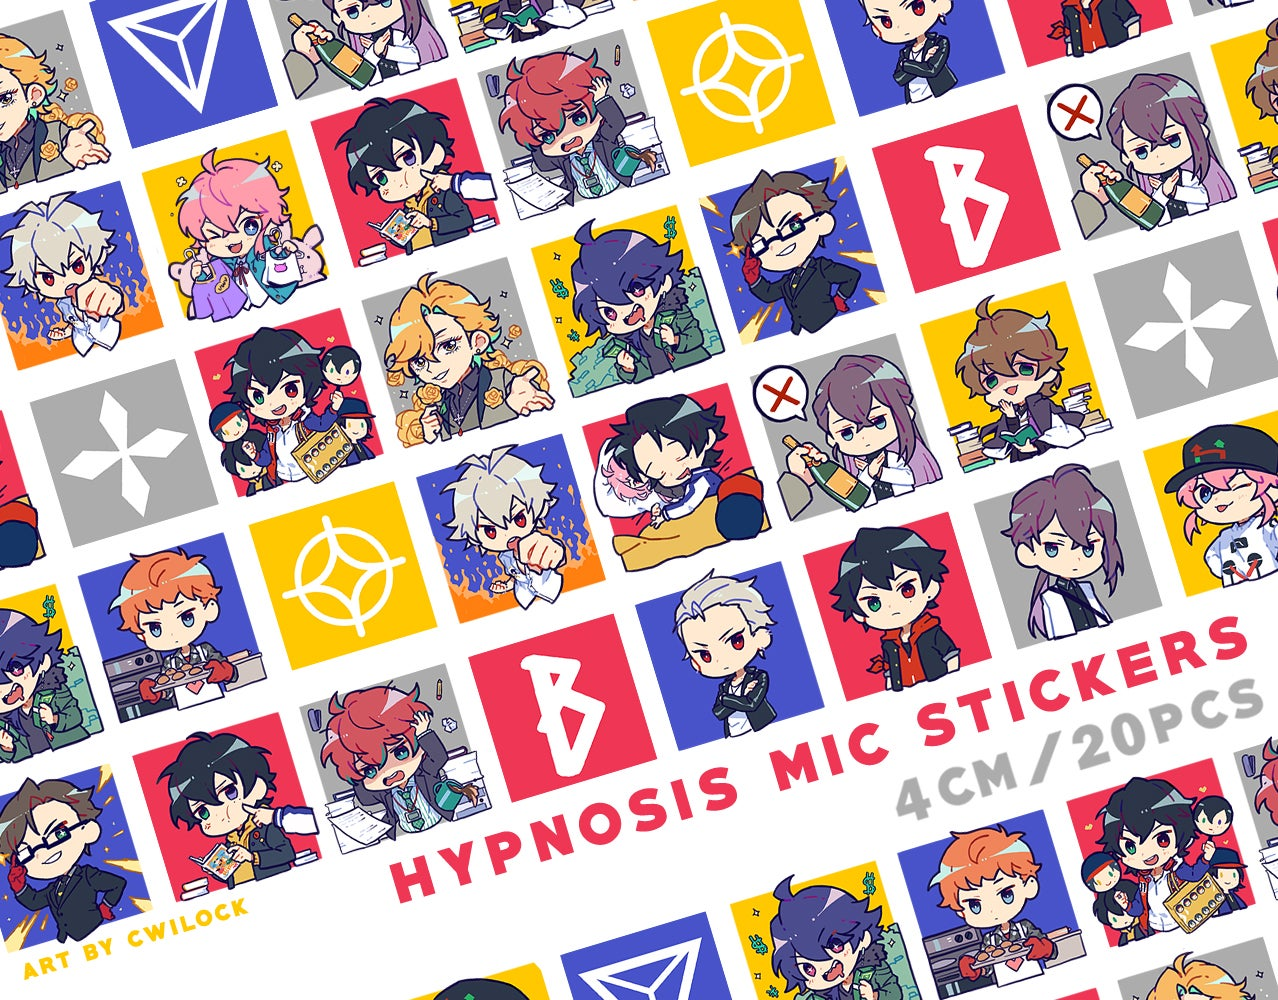 Image of HYPMIC sticker pack